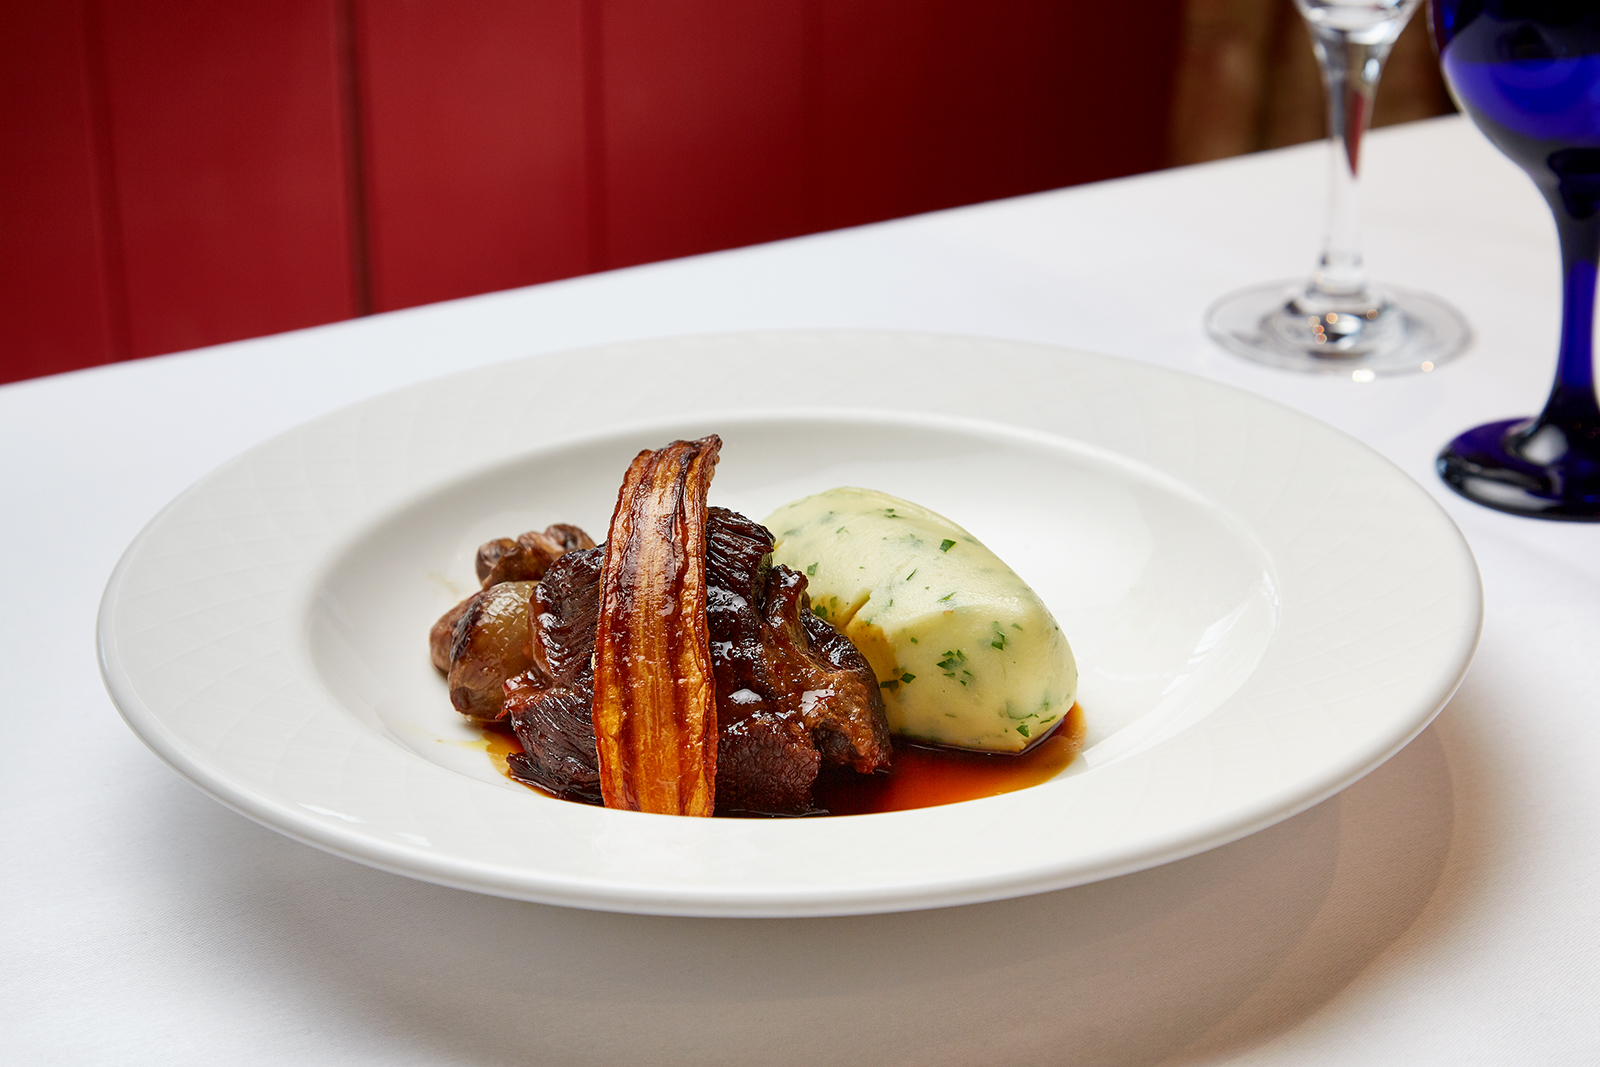 SE - Braised beef bourguignone, parsley mash potato, roasted carrot II.jpg